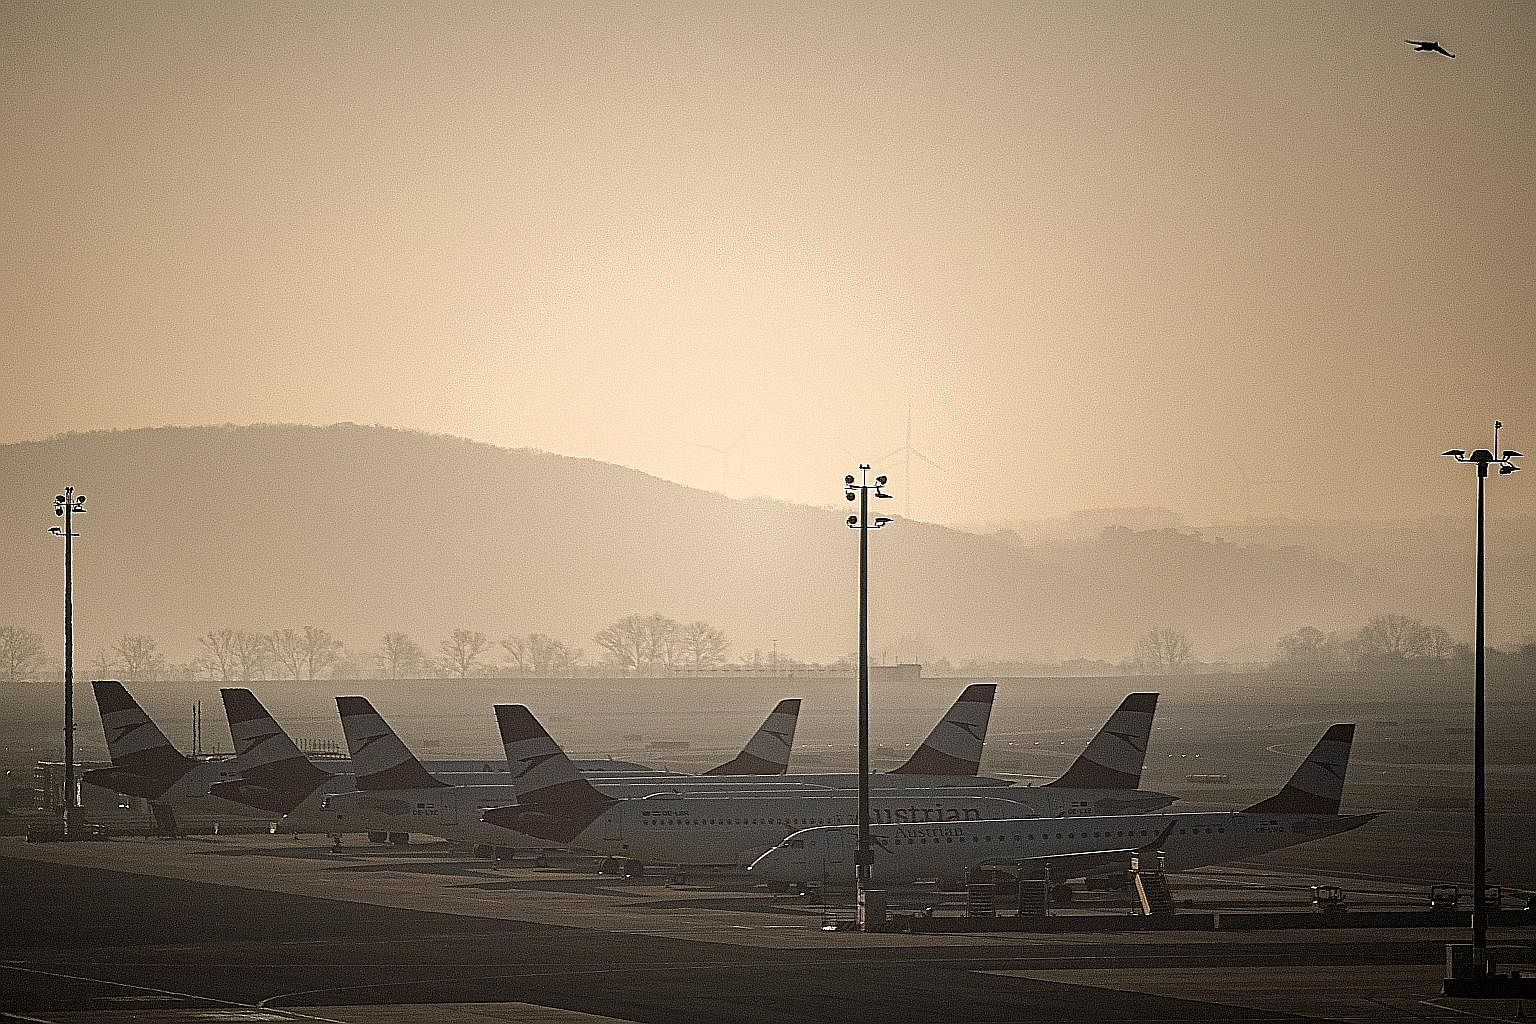 Grounded airplanes of Austrian Airlines parked at the Vienna International Airport last week. Iata's updated report notes that beyond the top 30 players, all other airlines have weak balance sheets, high debt and barely enough cash to cover three mon